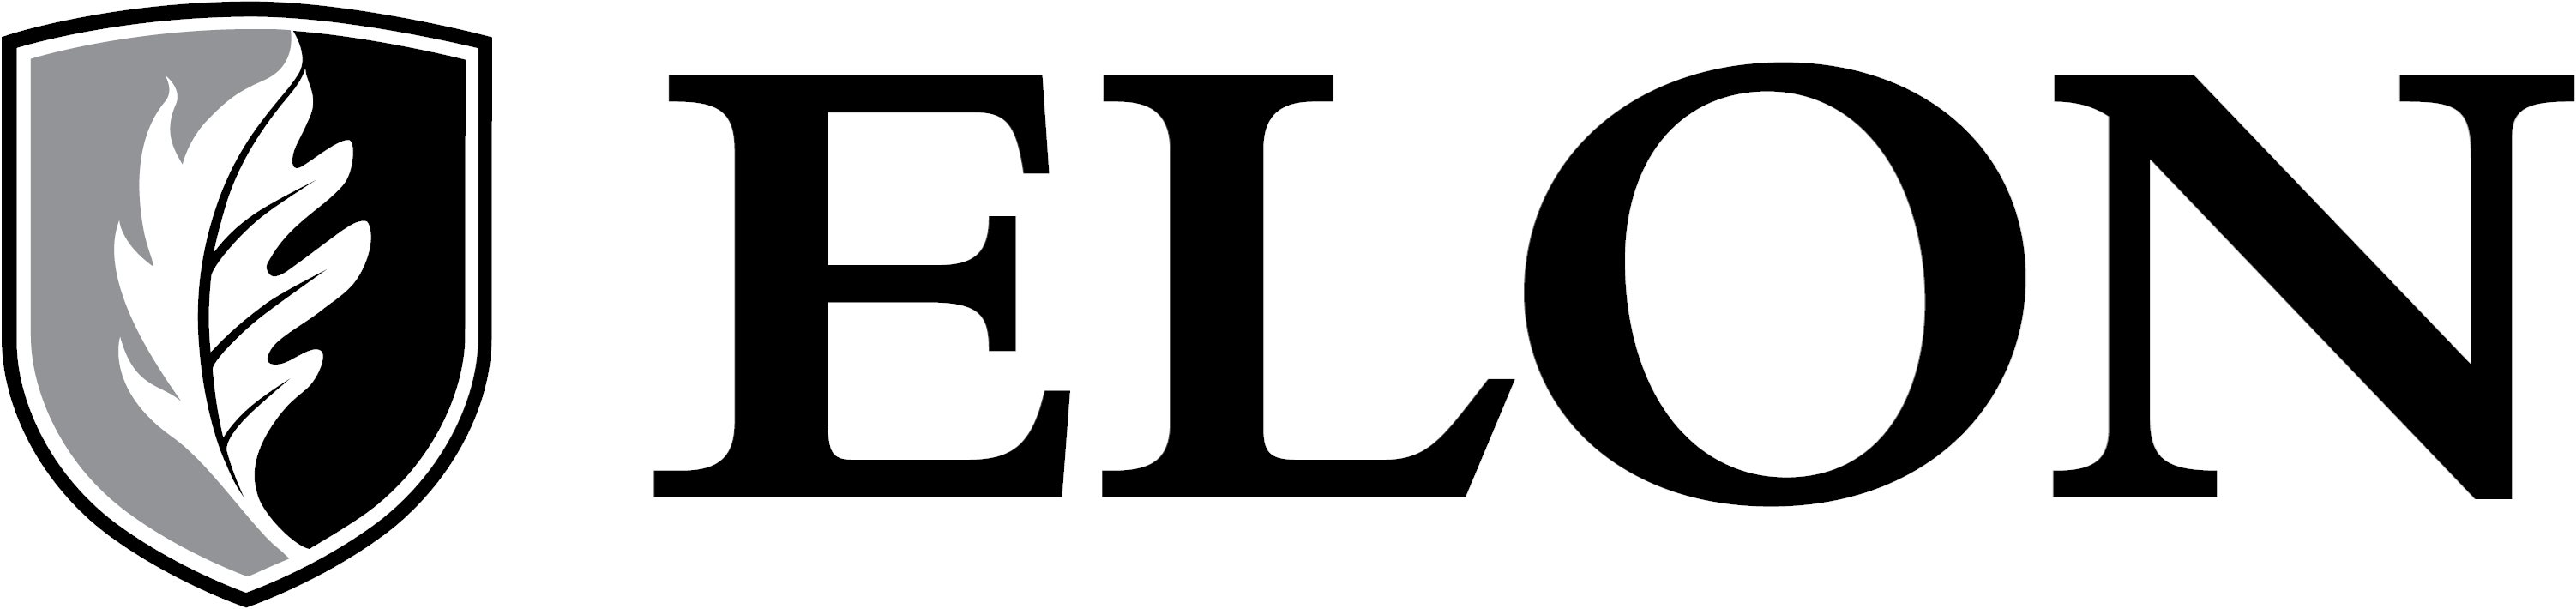 Elon University secondary signature one-color example